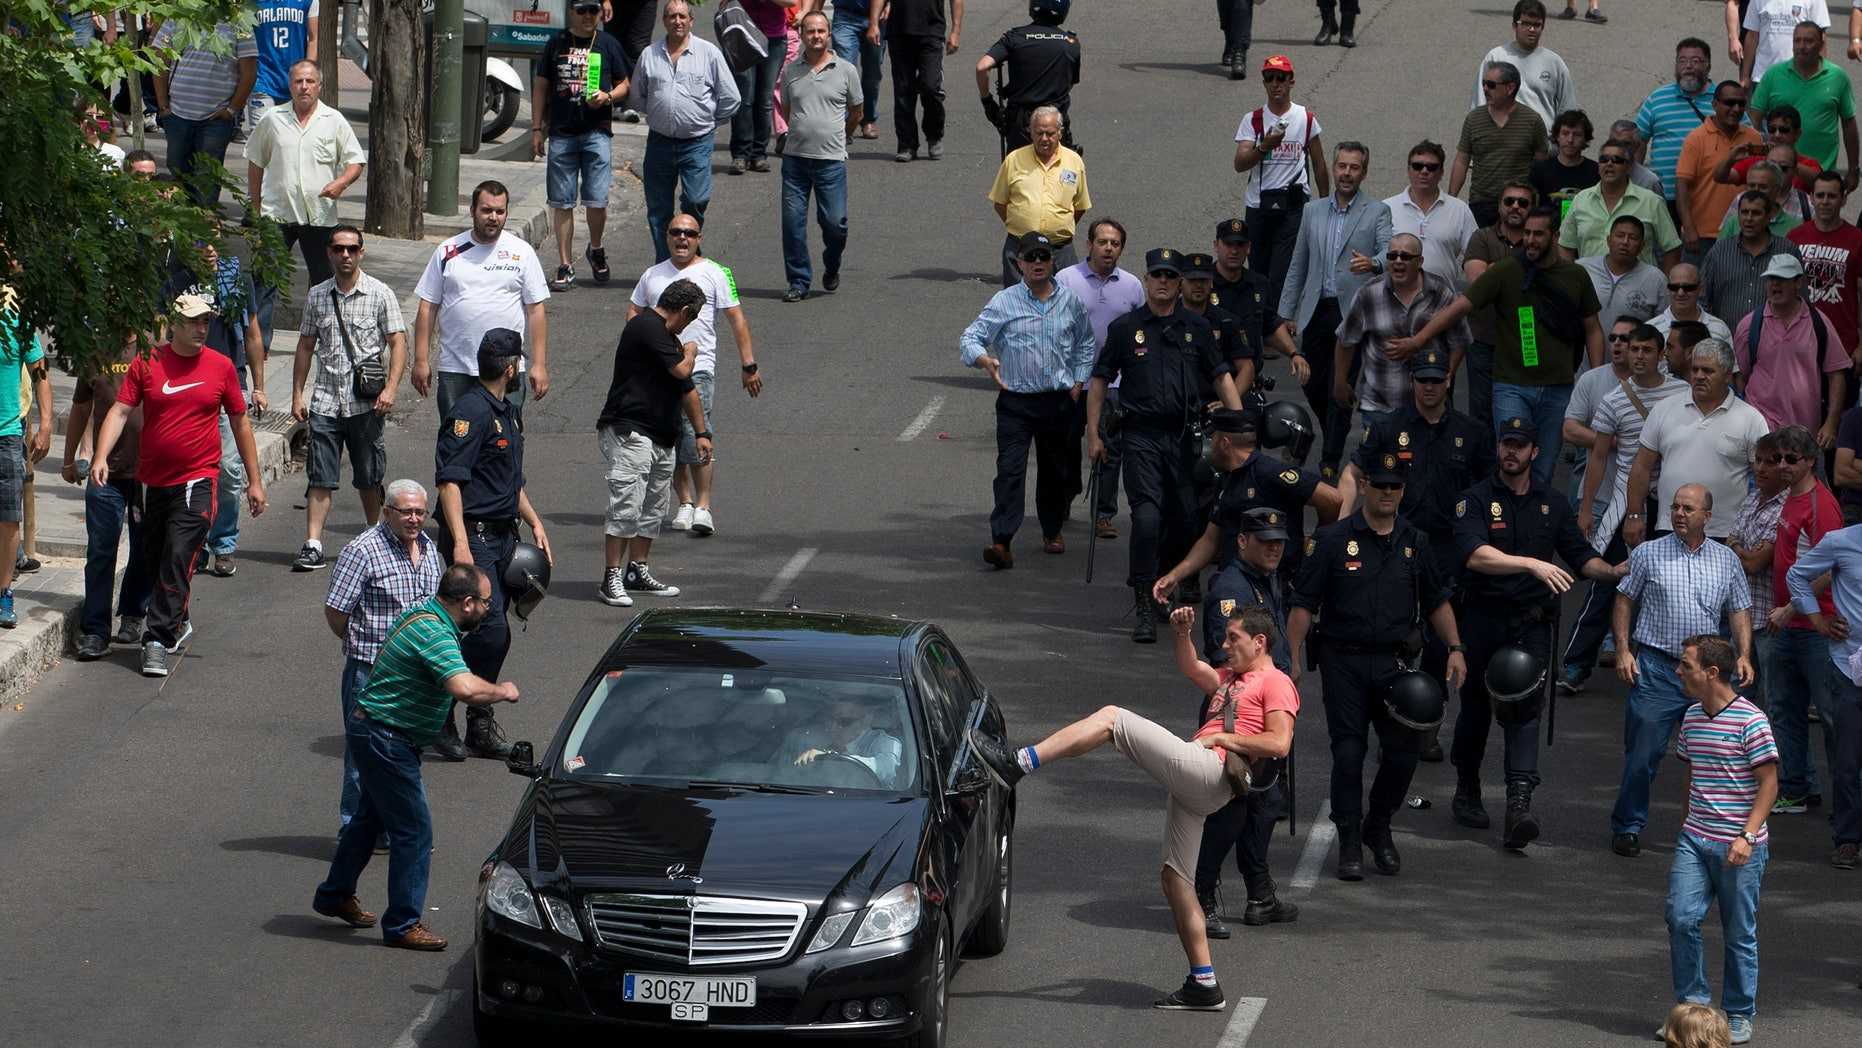 A demonstrator kicks a car during a taxi strike and protest in Madrid, Spain, in June 2014